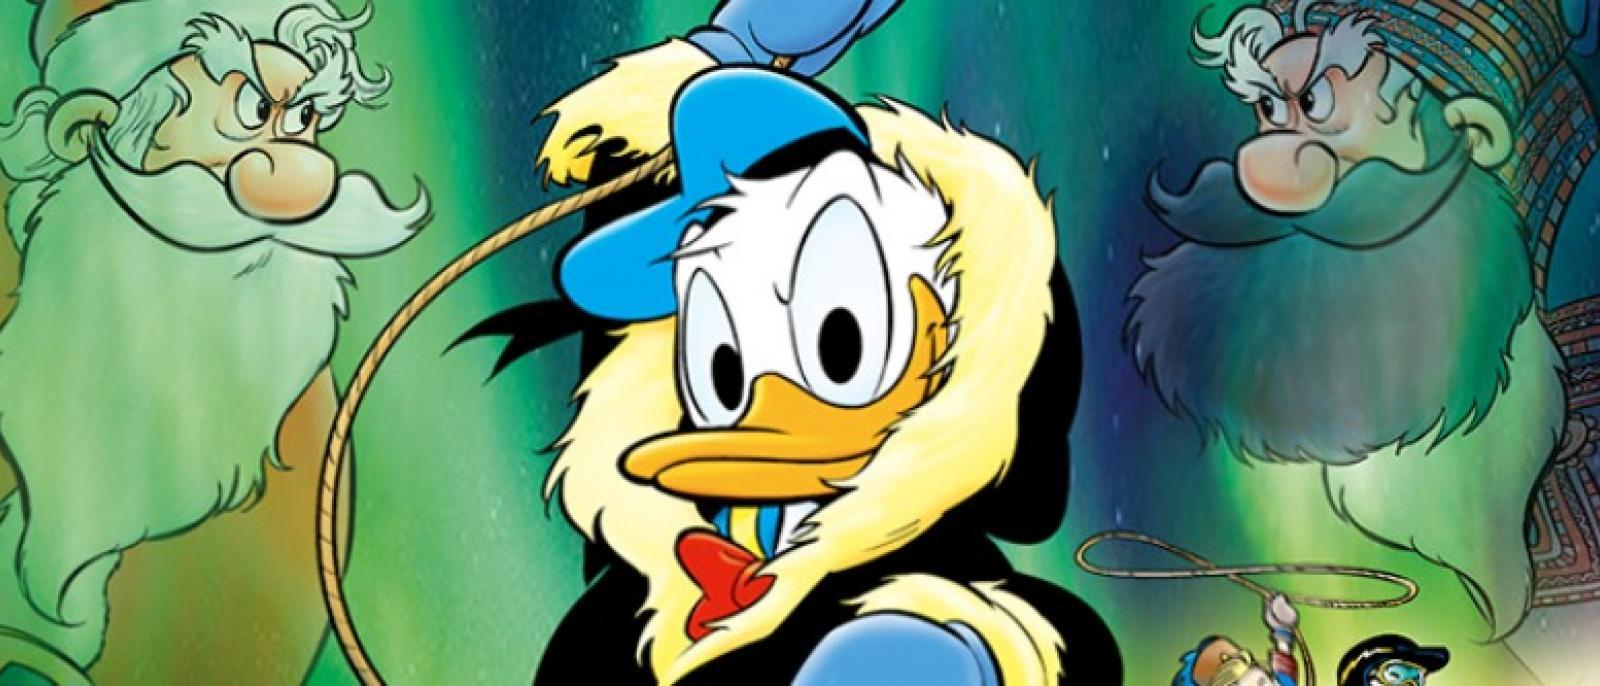 norsk-donald